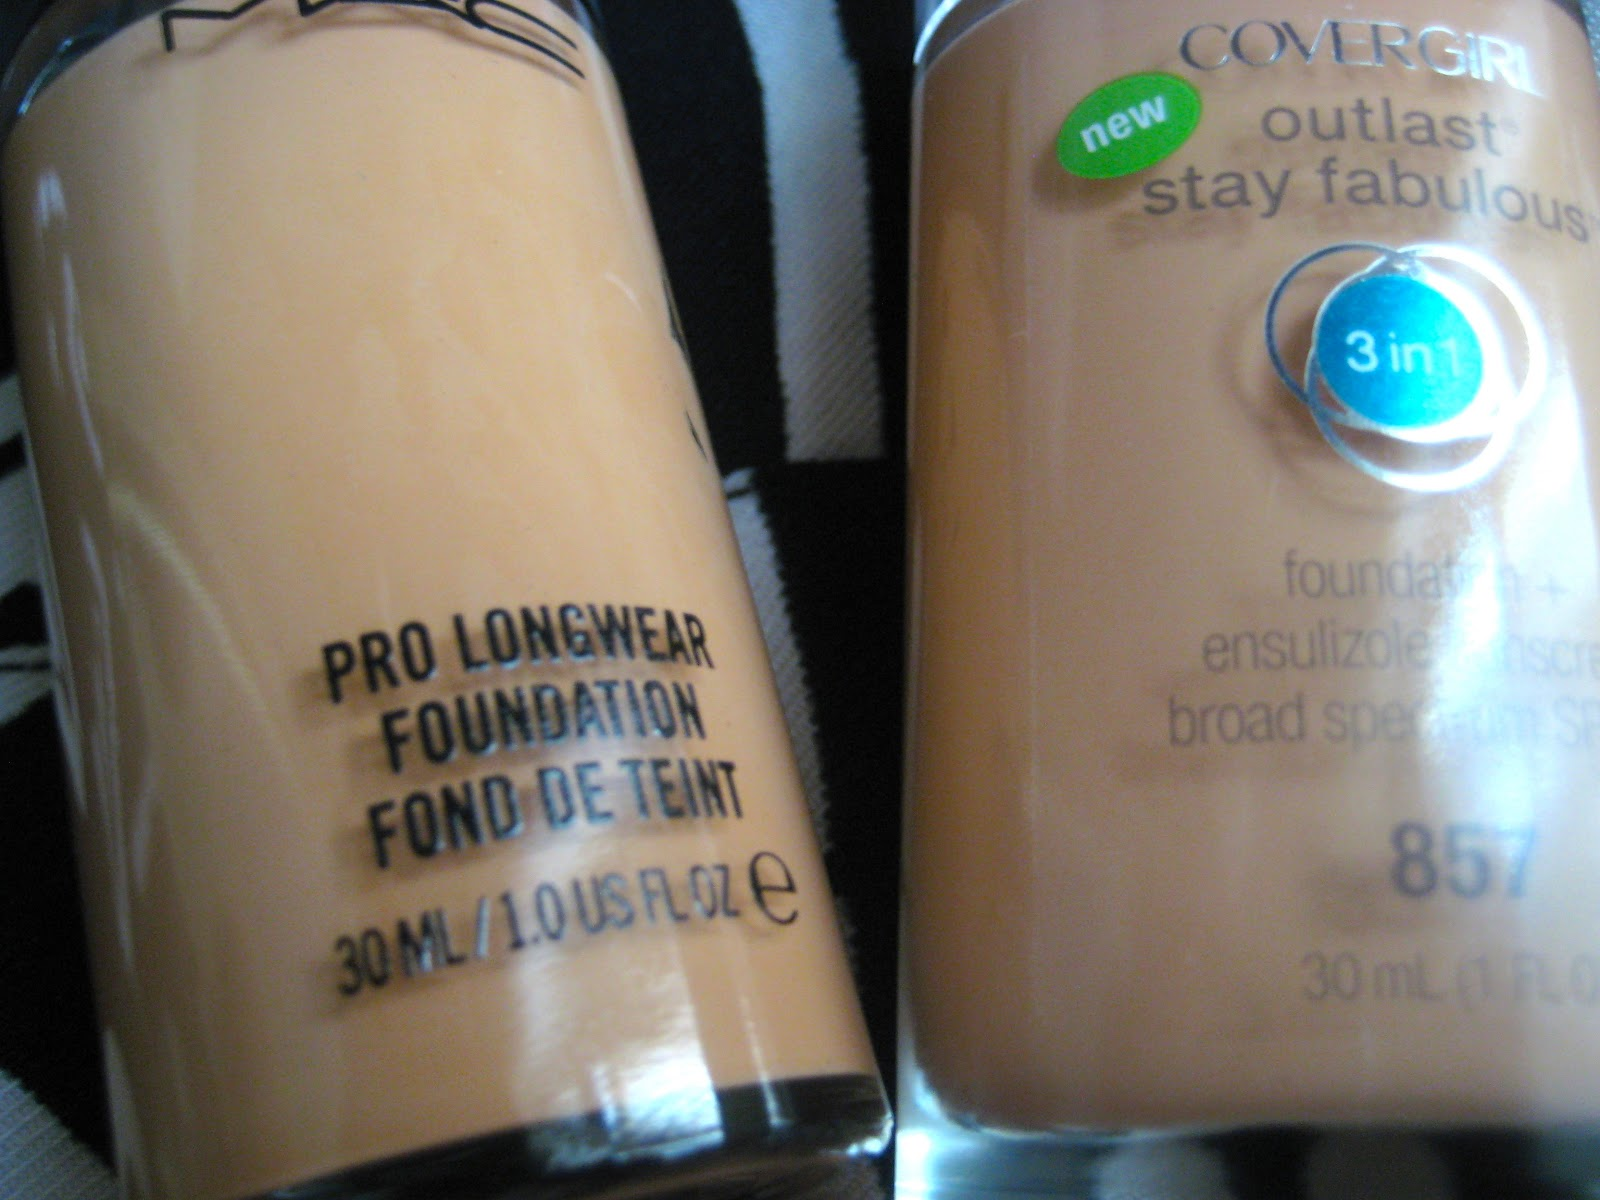 Cover Girl Outlast Stay Fabulous 3-In-1 Foundation Review: Great Drugstore Foundation for Medium/Olive/Yellow/NC35-NC42 Skin